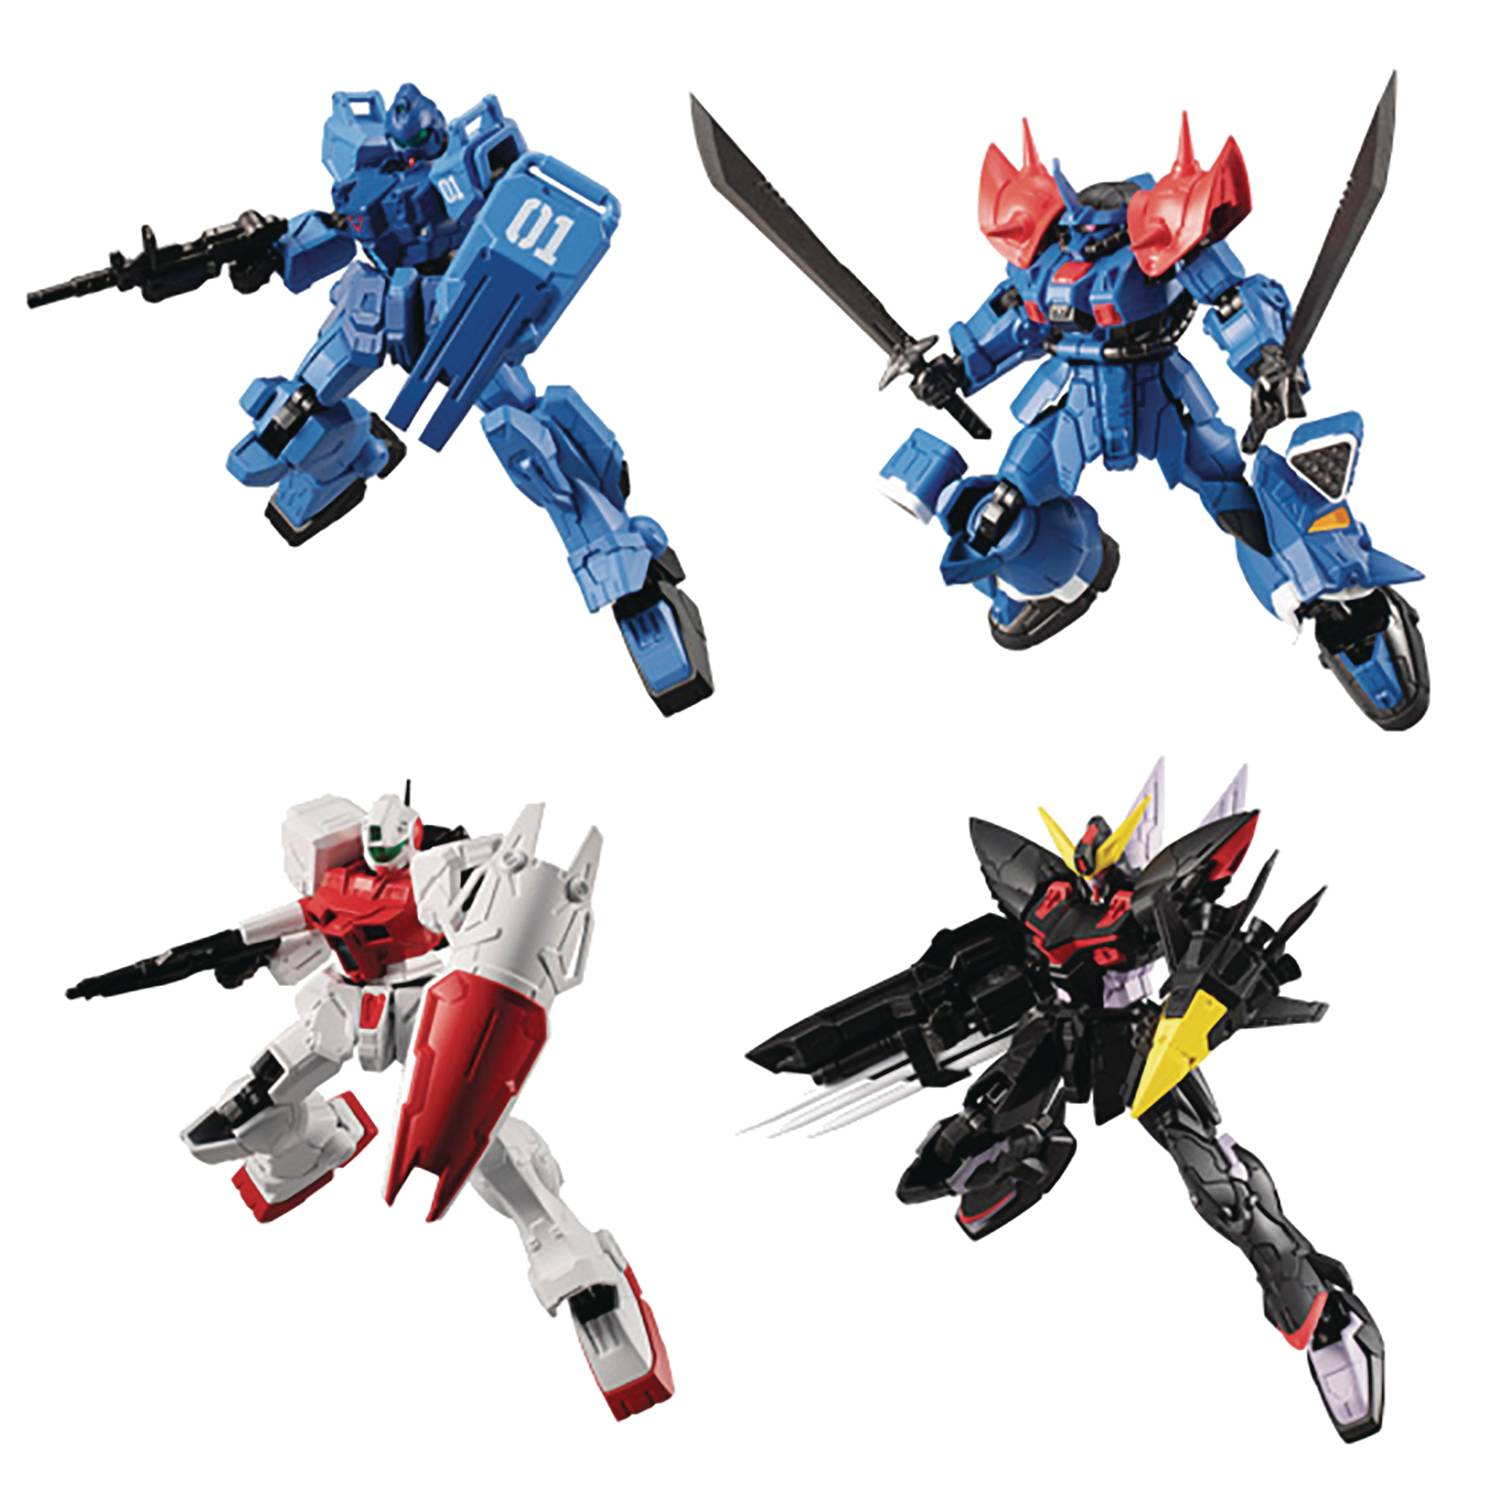 MOBILE SUIT GUNDAM G FRAME V14 SHOKUGAN 5PC MINI FIG ASST (N